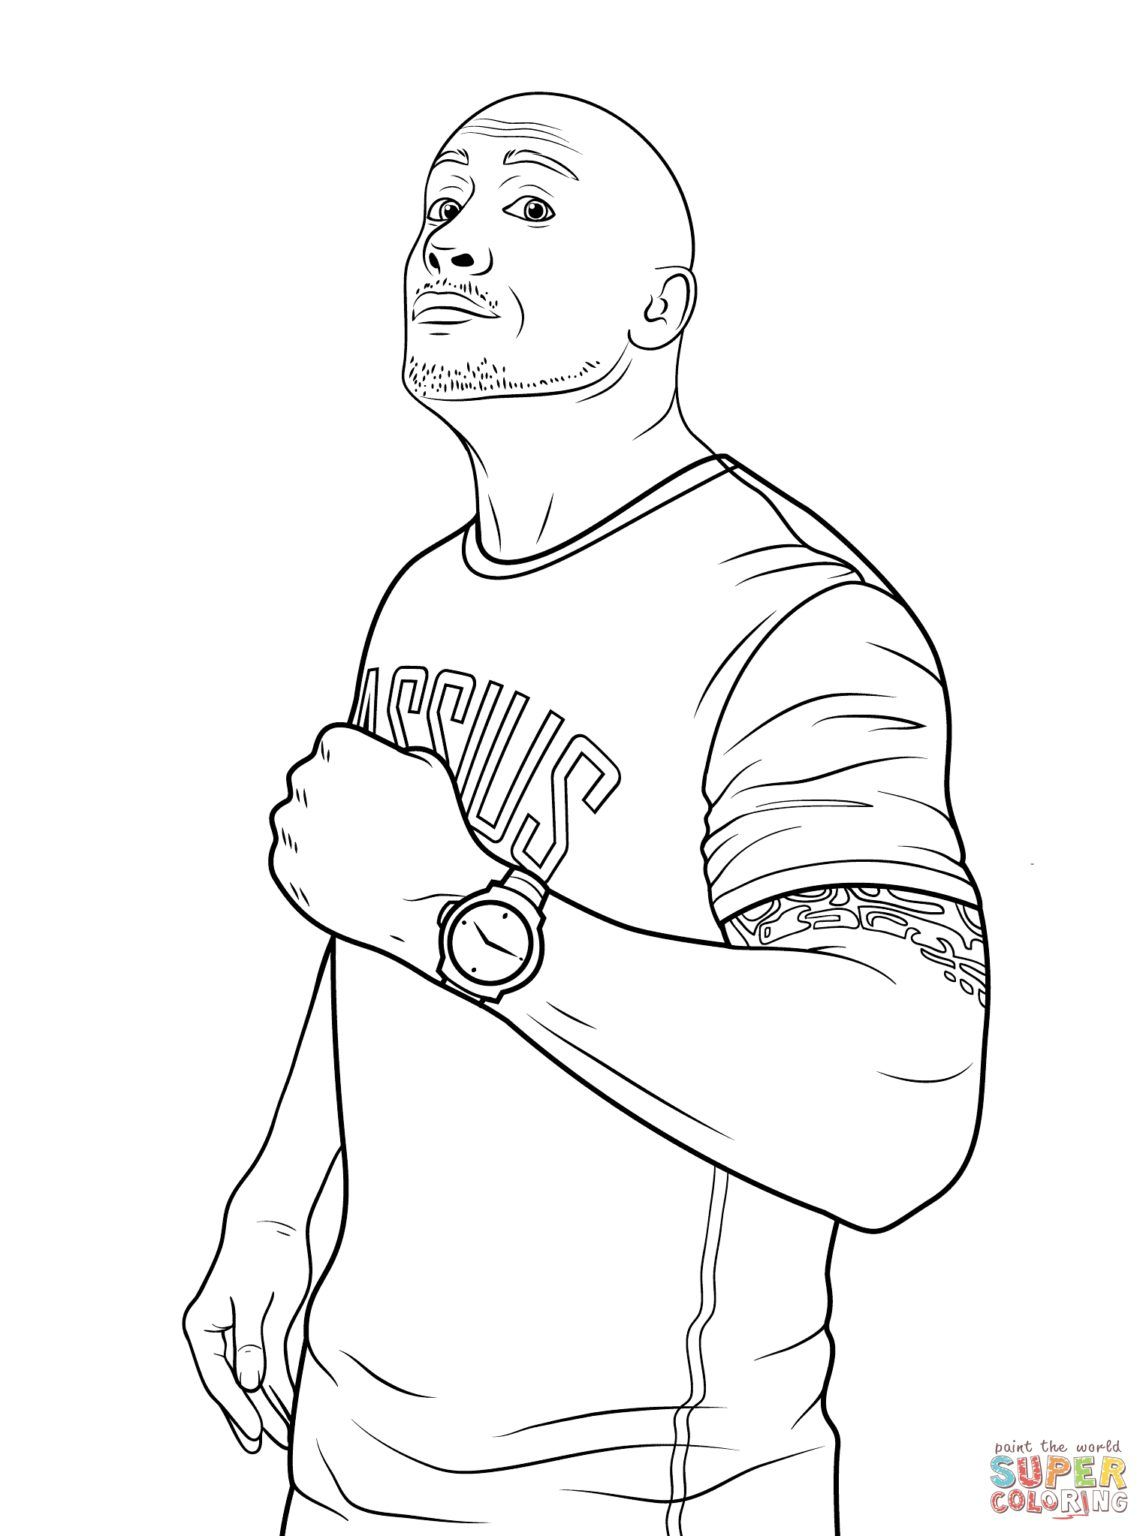 Wwe Coloring Pages Children Coloring Wwe Coloring Pages Coloring Books Kids Coloring Books